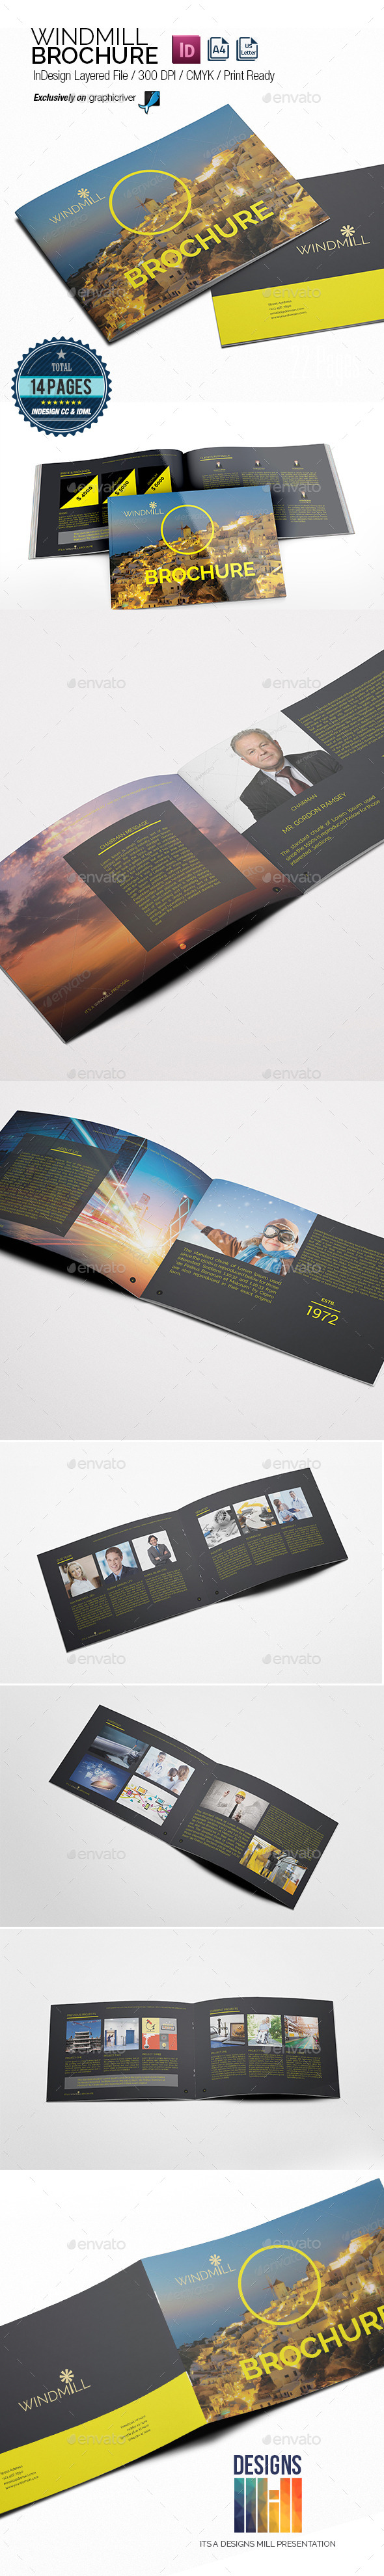 Windmill Multipurpose Brochure - Informational Brochures